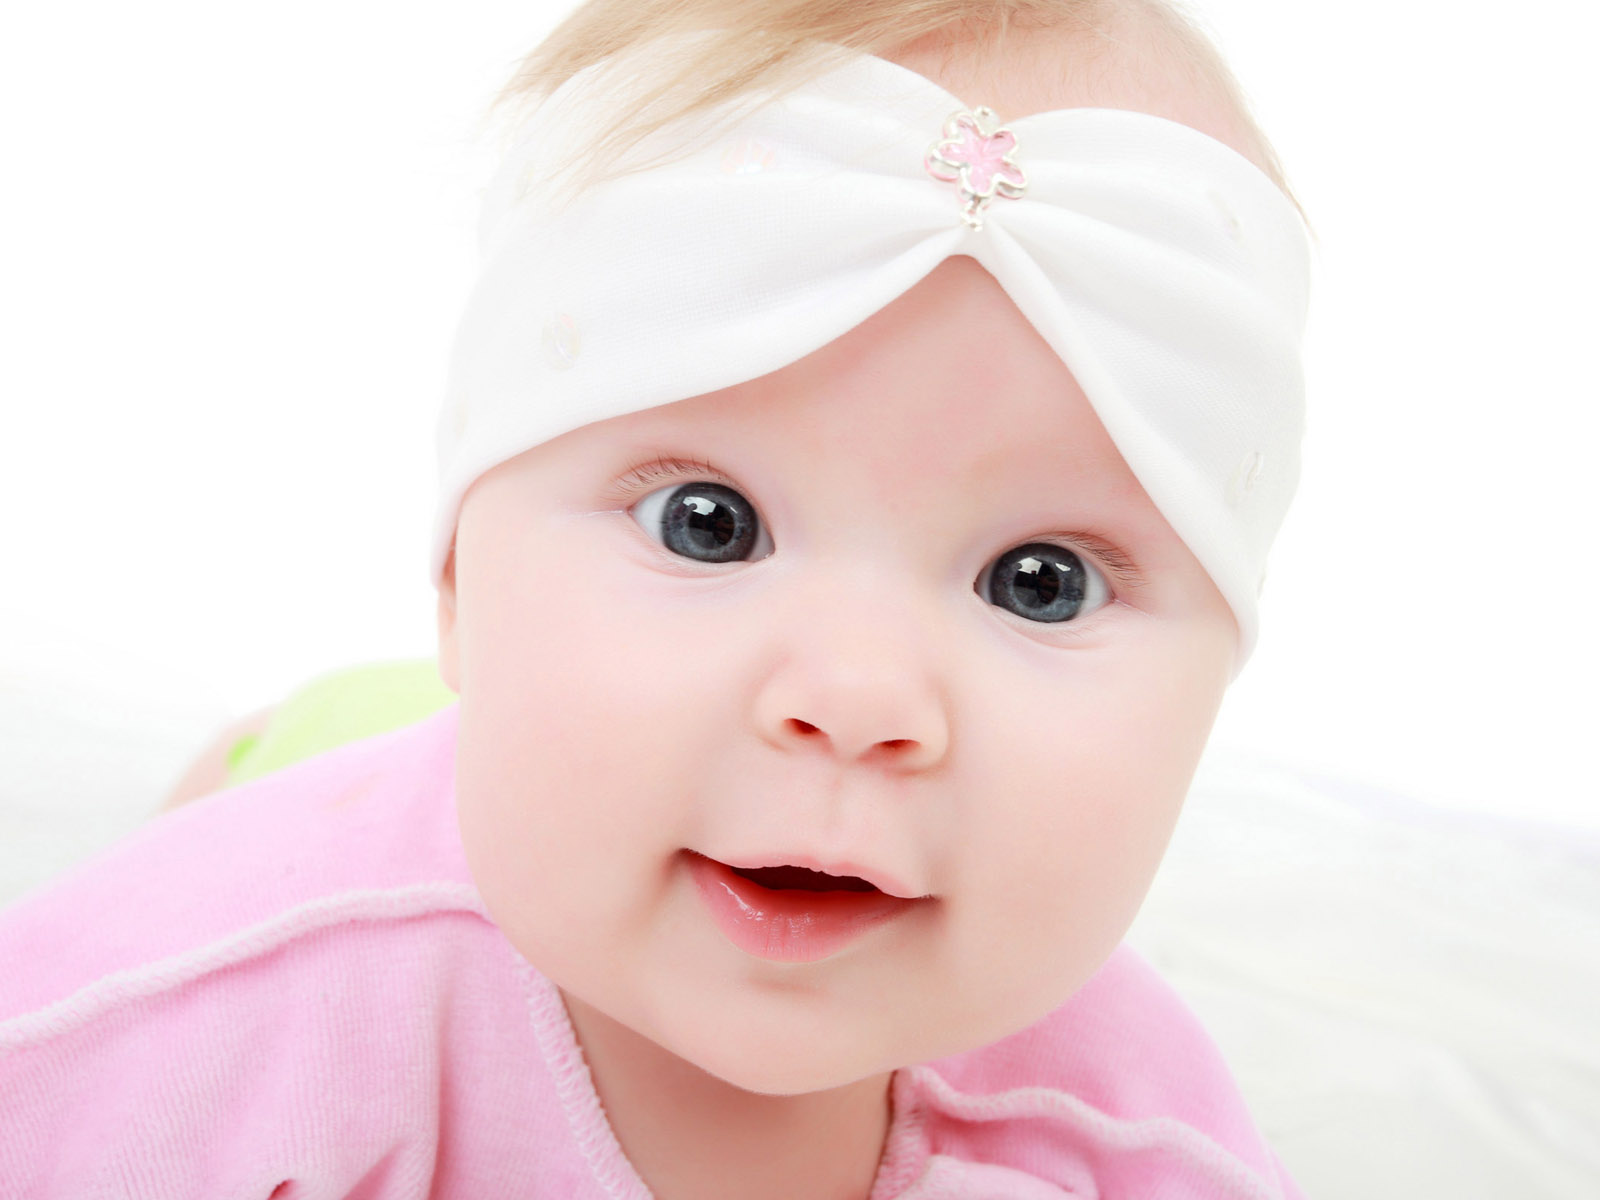 Babies smiling wallpapers salon des refus s for Baby wallpaper